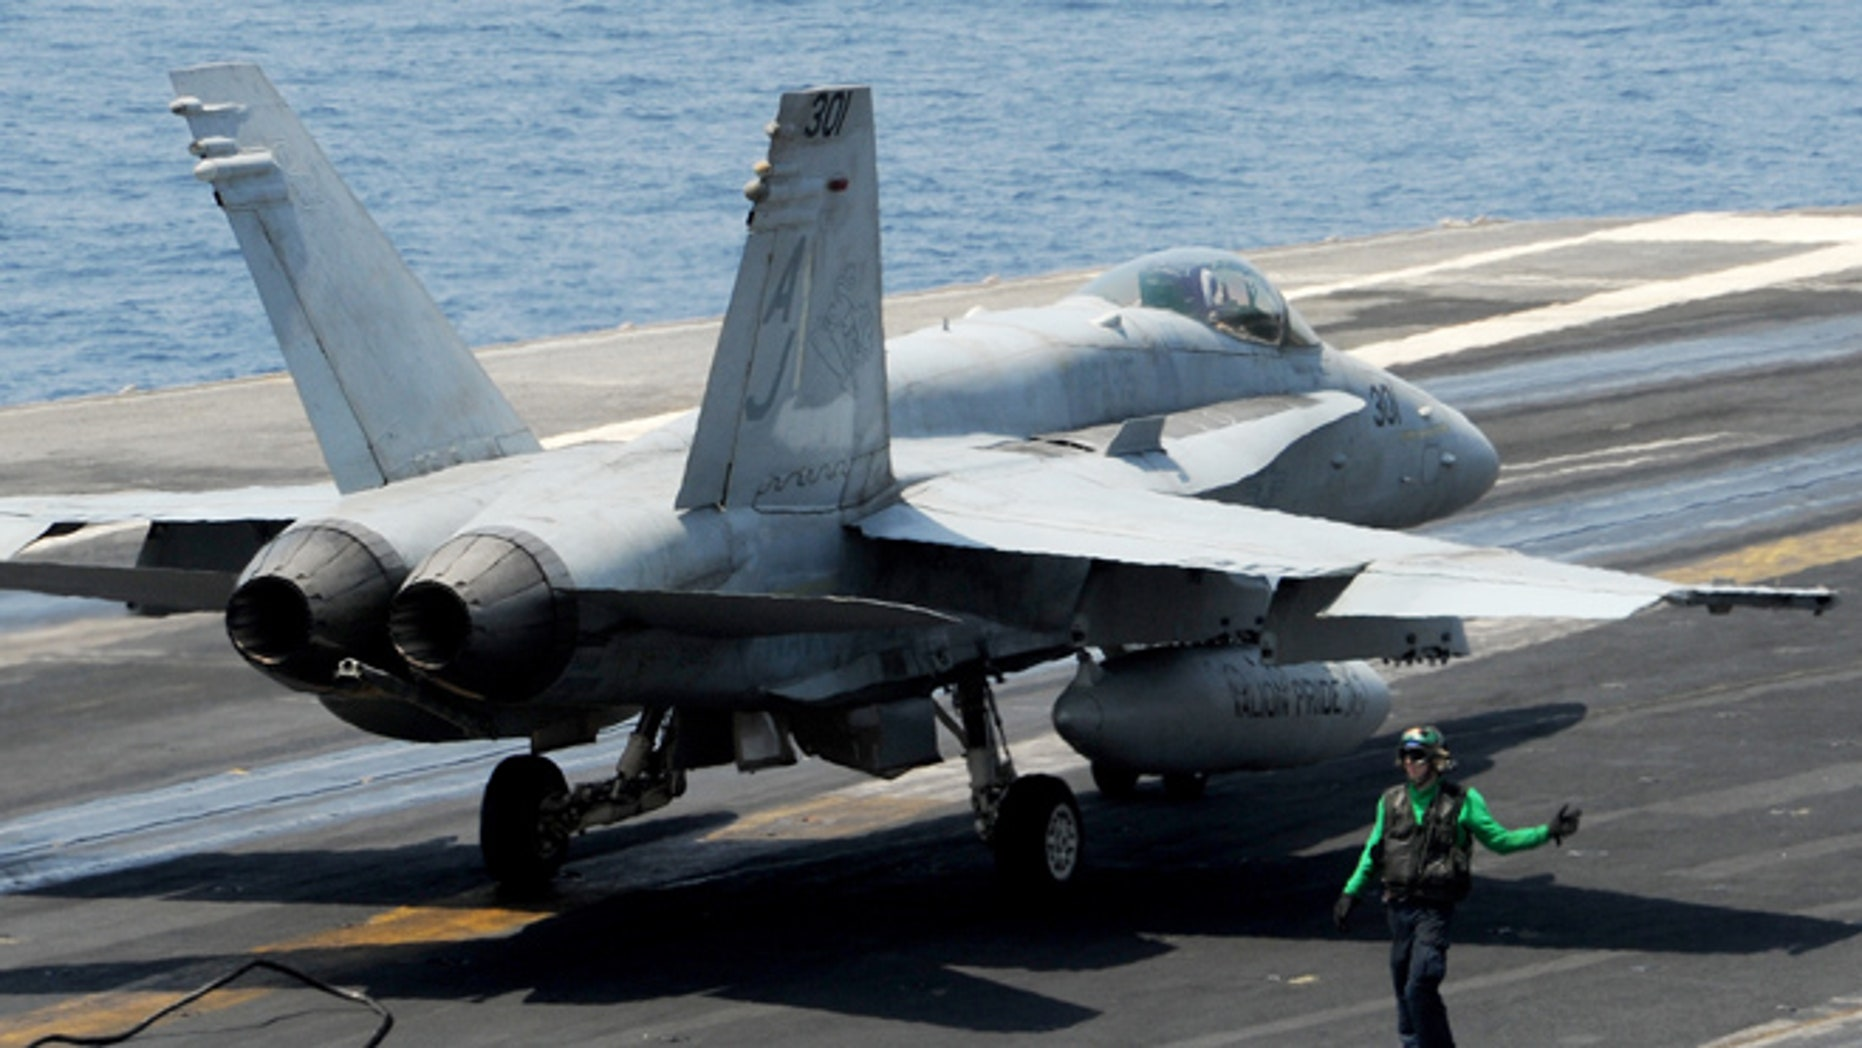 The two F/A-18C Hornets have not been recovered, Navy officials say. (Courtesy: US Navy)